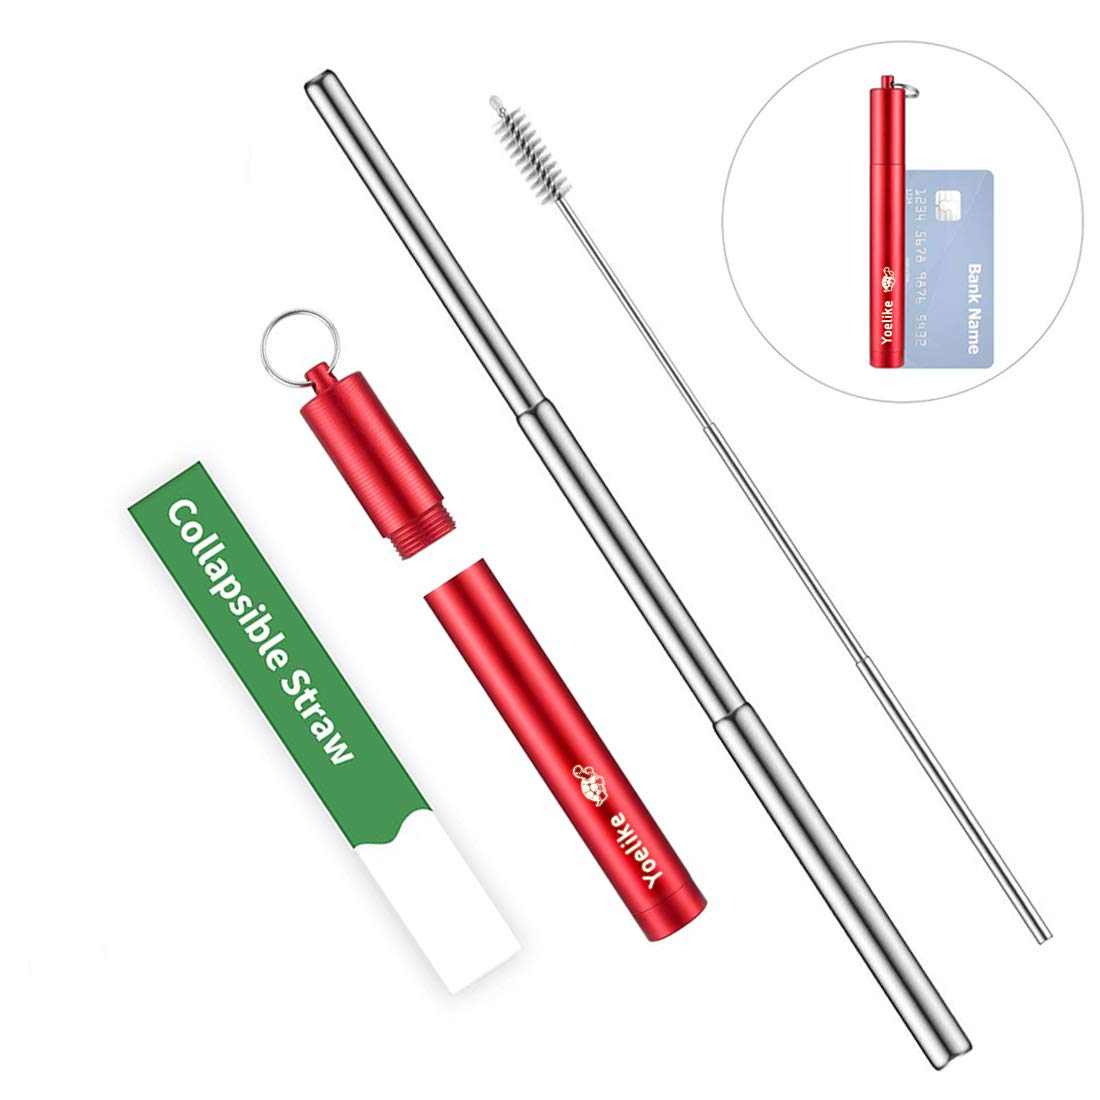 Re-usable Collapsible Stainless Steel Metal Straw, Yoelike Portable Telescopic Travel Straws with Cleaner Brush, Keychain & Case, Perfect for Drinking Water, Smoothie, Juice, Milkshake, Coffe (Red)